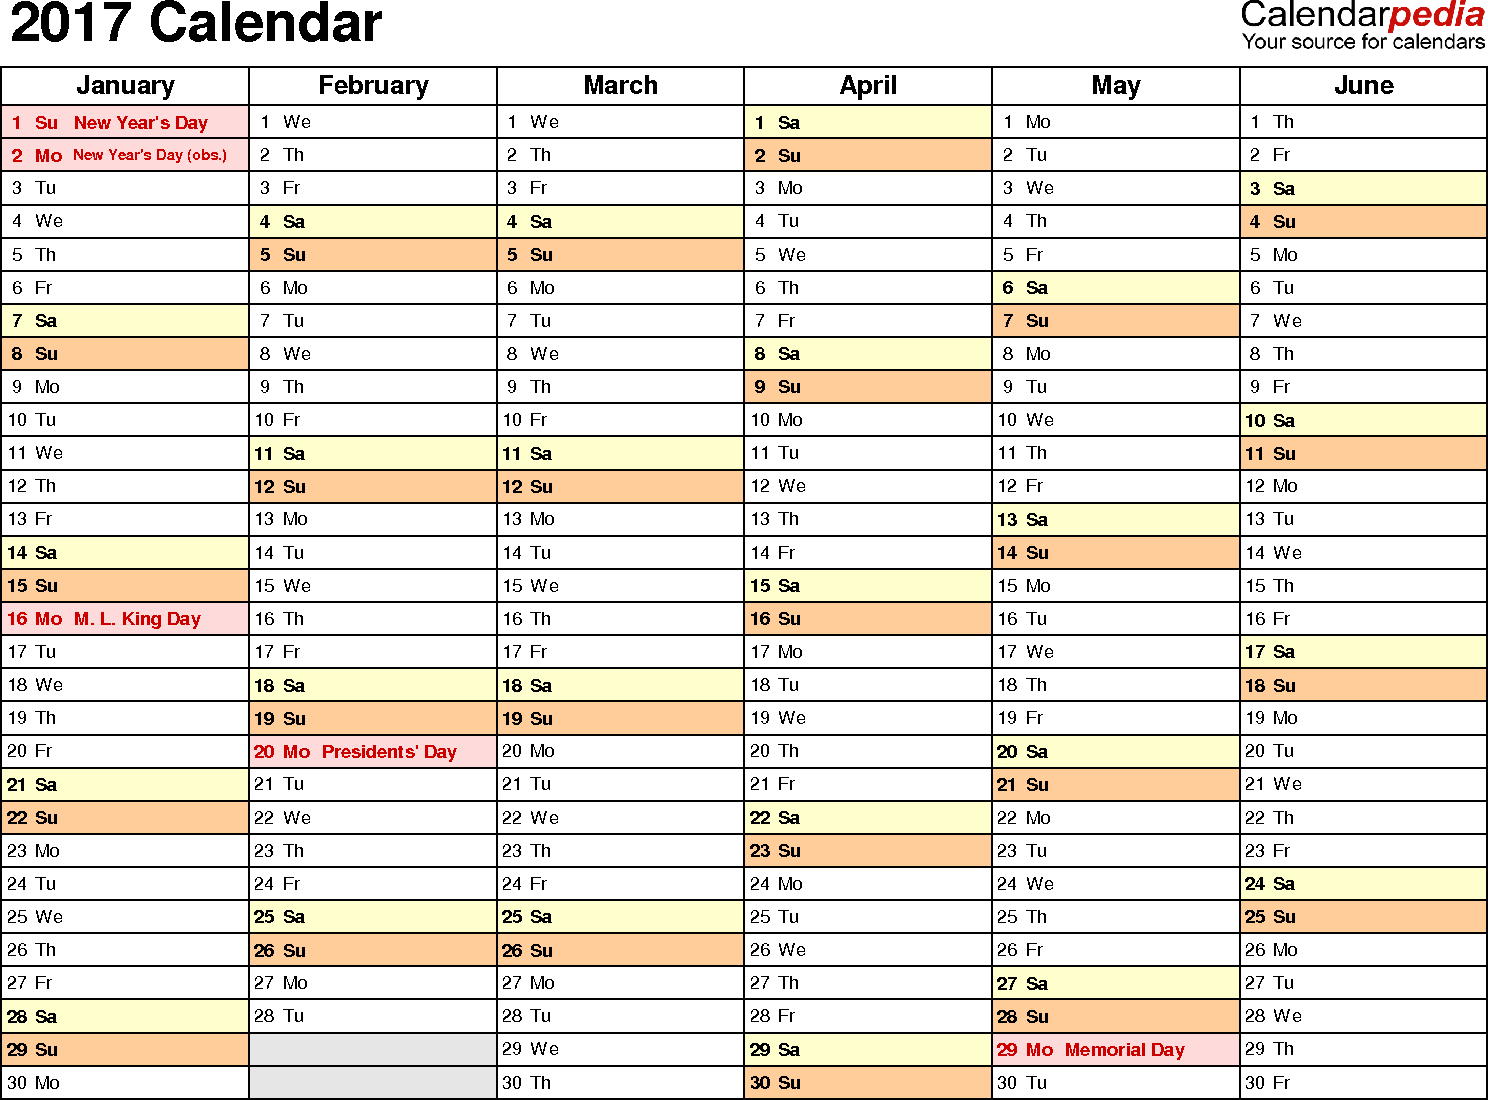 Ediblewildsus  Marvelous  Calendar  Download  Free Printable Excel Templates Xls With Interesting Template   Calendar For Excel Months Horizontally  Pages Landscape Orientation With Astonishing Using Excel For Data Analysis Also Excel Countif Not Working In Addition Print To Pdf Excel And Excel Cell Name As Well As Excel Rept Function Additionally Sample Mean In Excel From Calendarpediacom With Ediblewildsus  Interesting  Calendar  Download  Free Printable Excel Templates Xls With Astonishing Template   Calendar For Excel Months Horizontally  Pages Landscape Orientation And Marvelous Using Excel For Data Analysis Also Excel Countif Not Working In Addition Print To Pdf Excel From Calendarpediacom